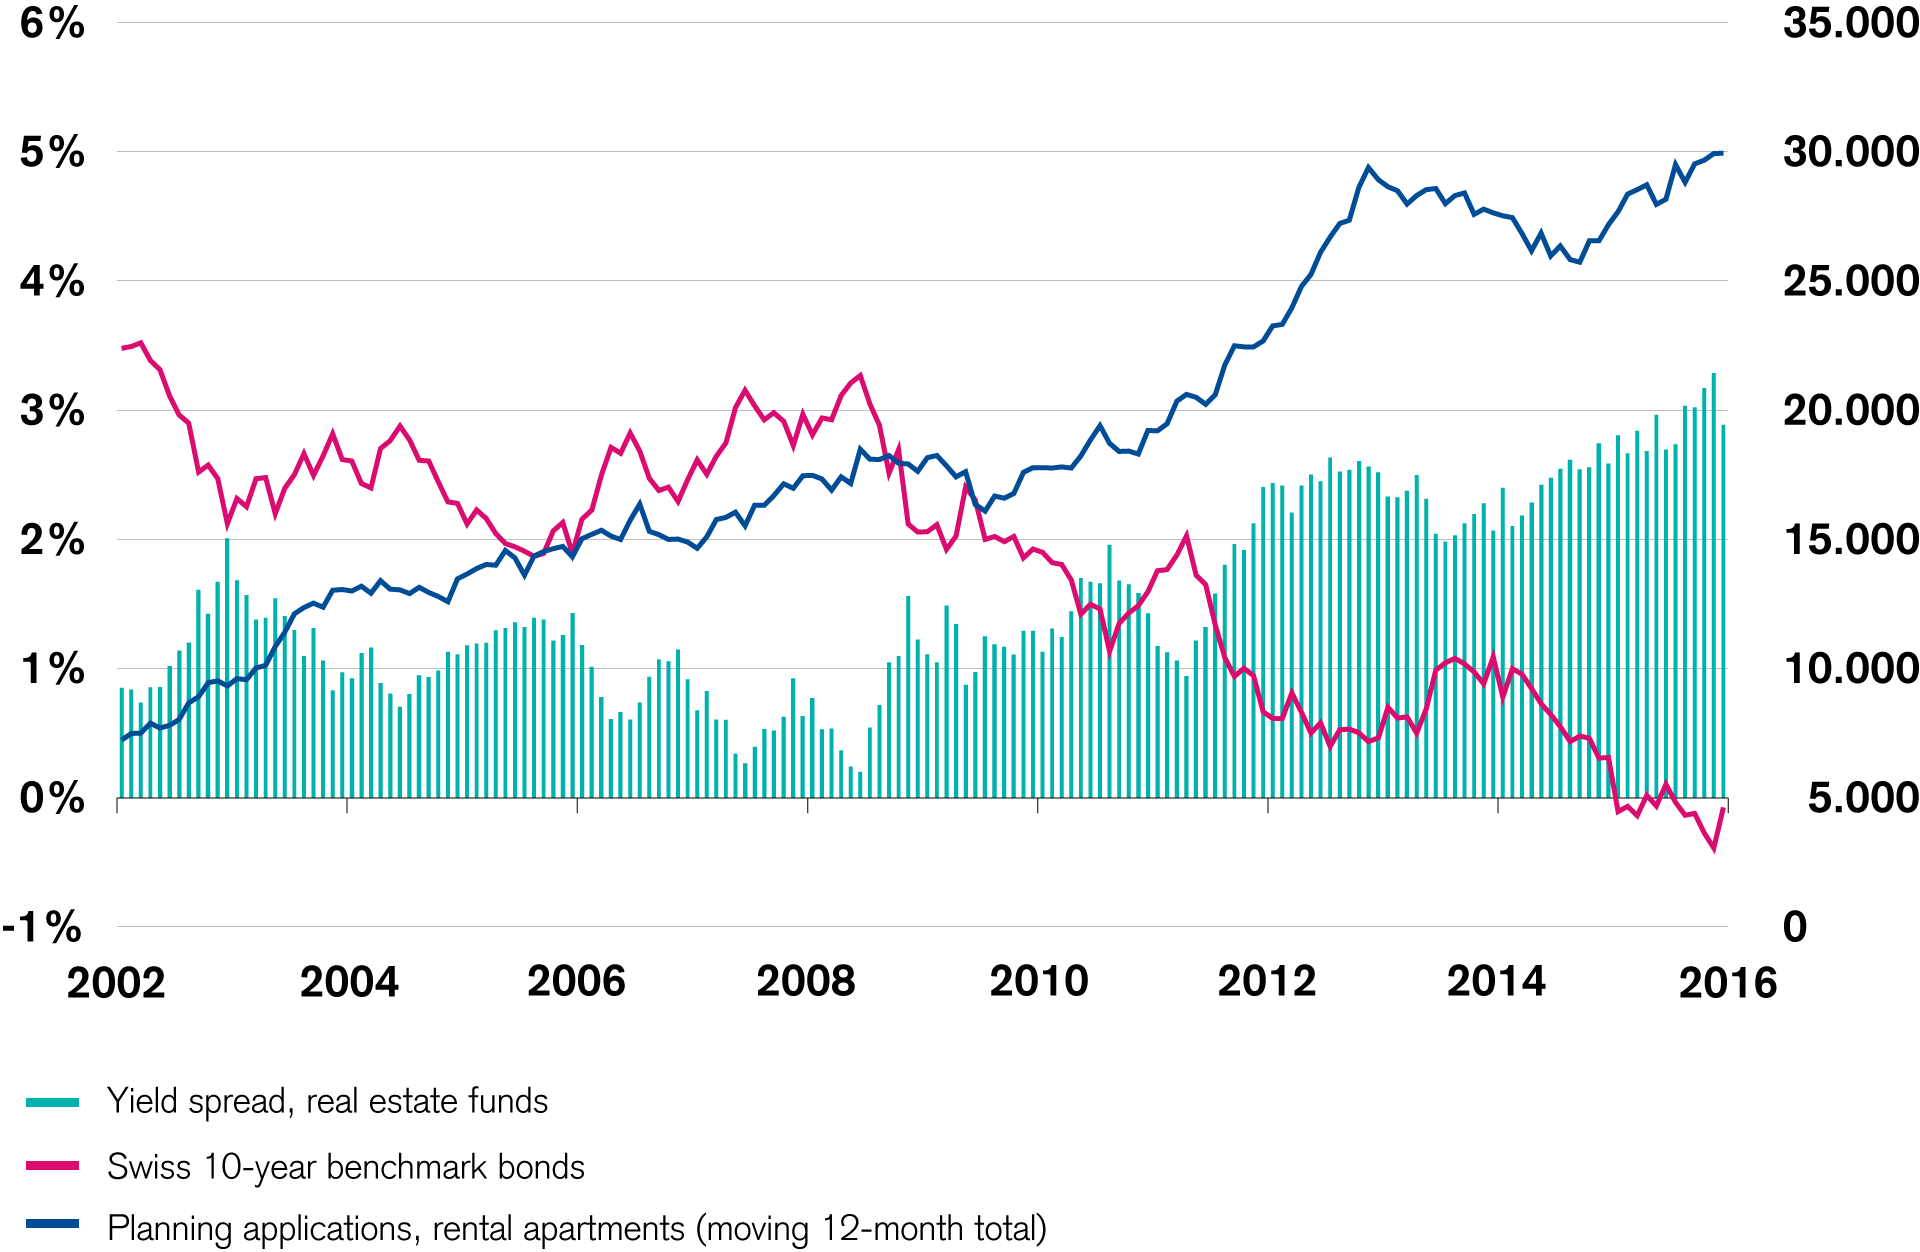 Significant yield spread of real estate investments spurs construction activity